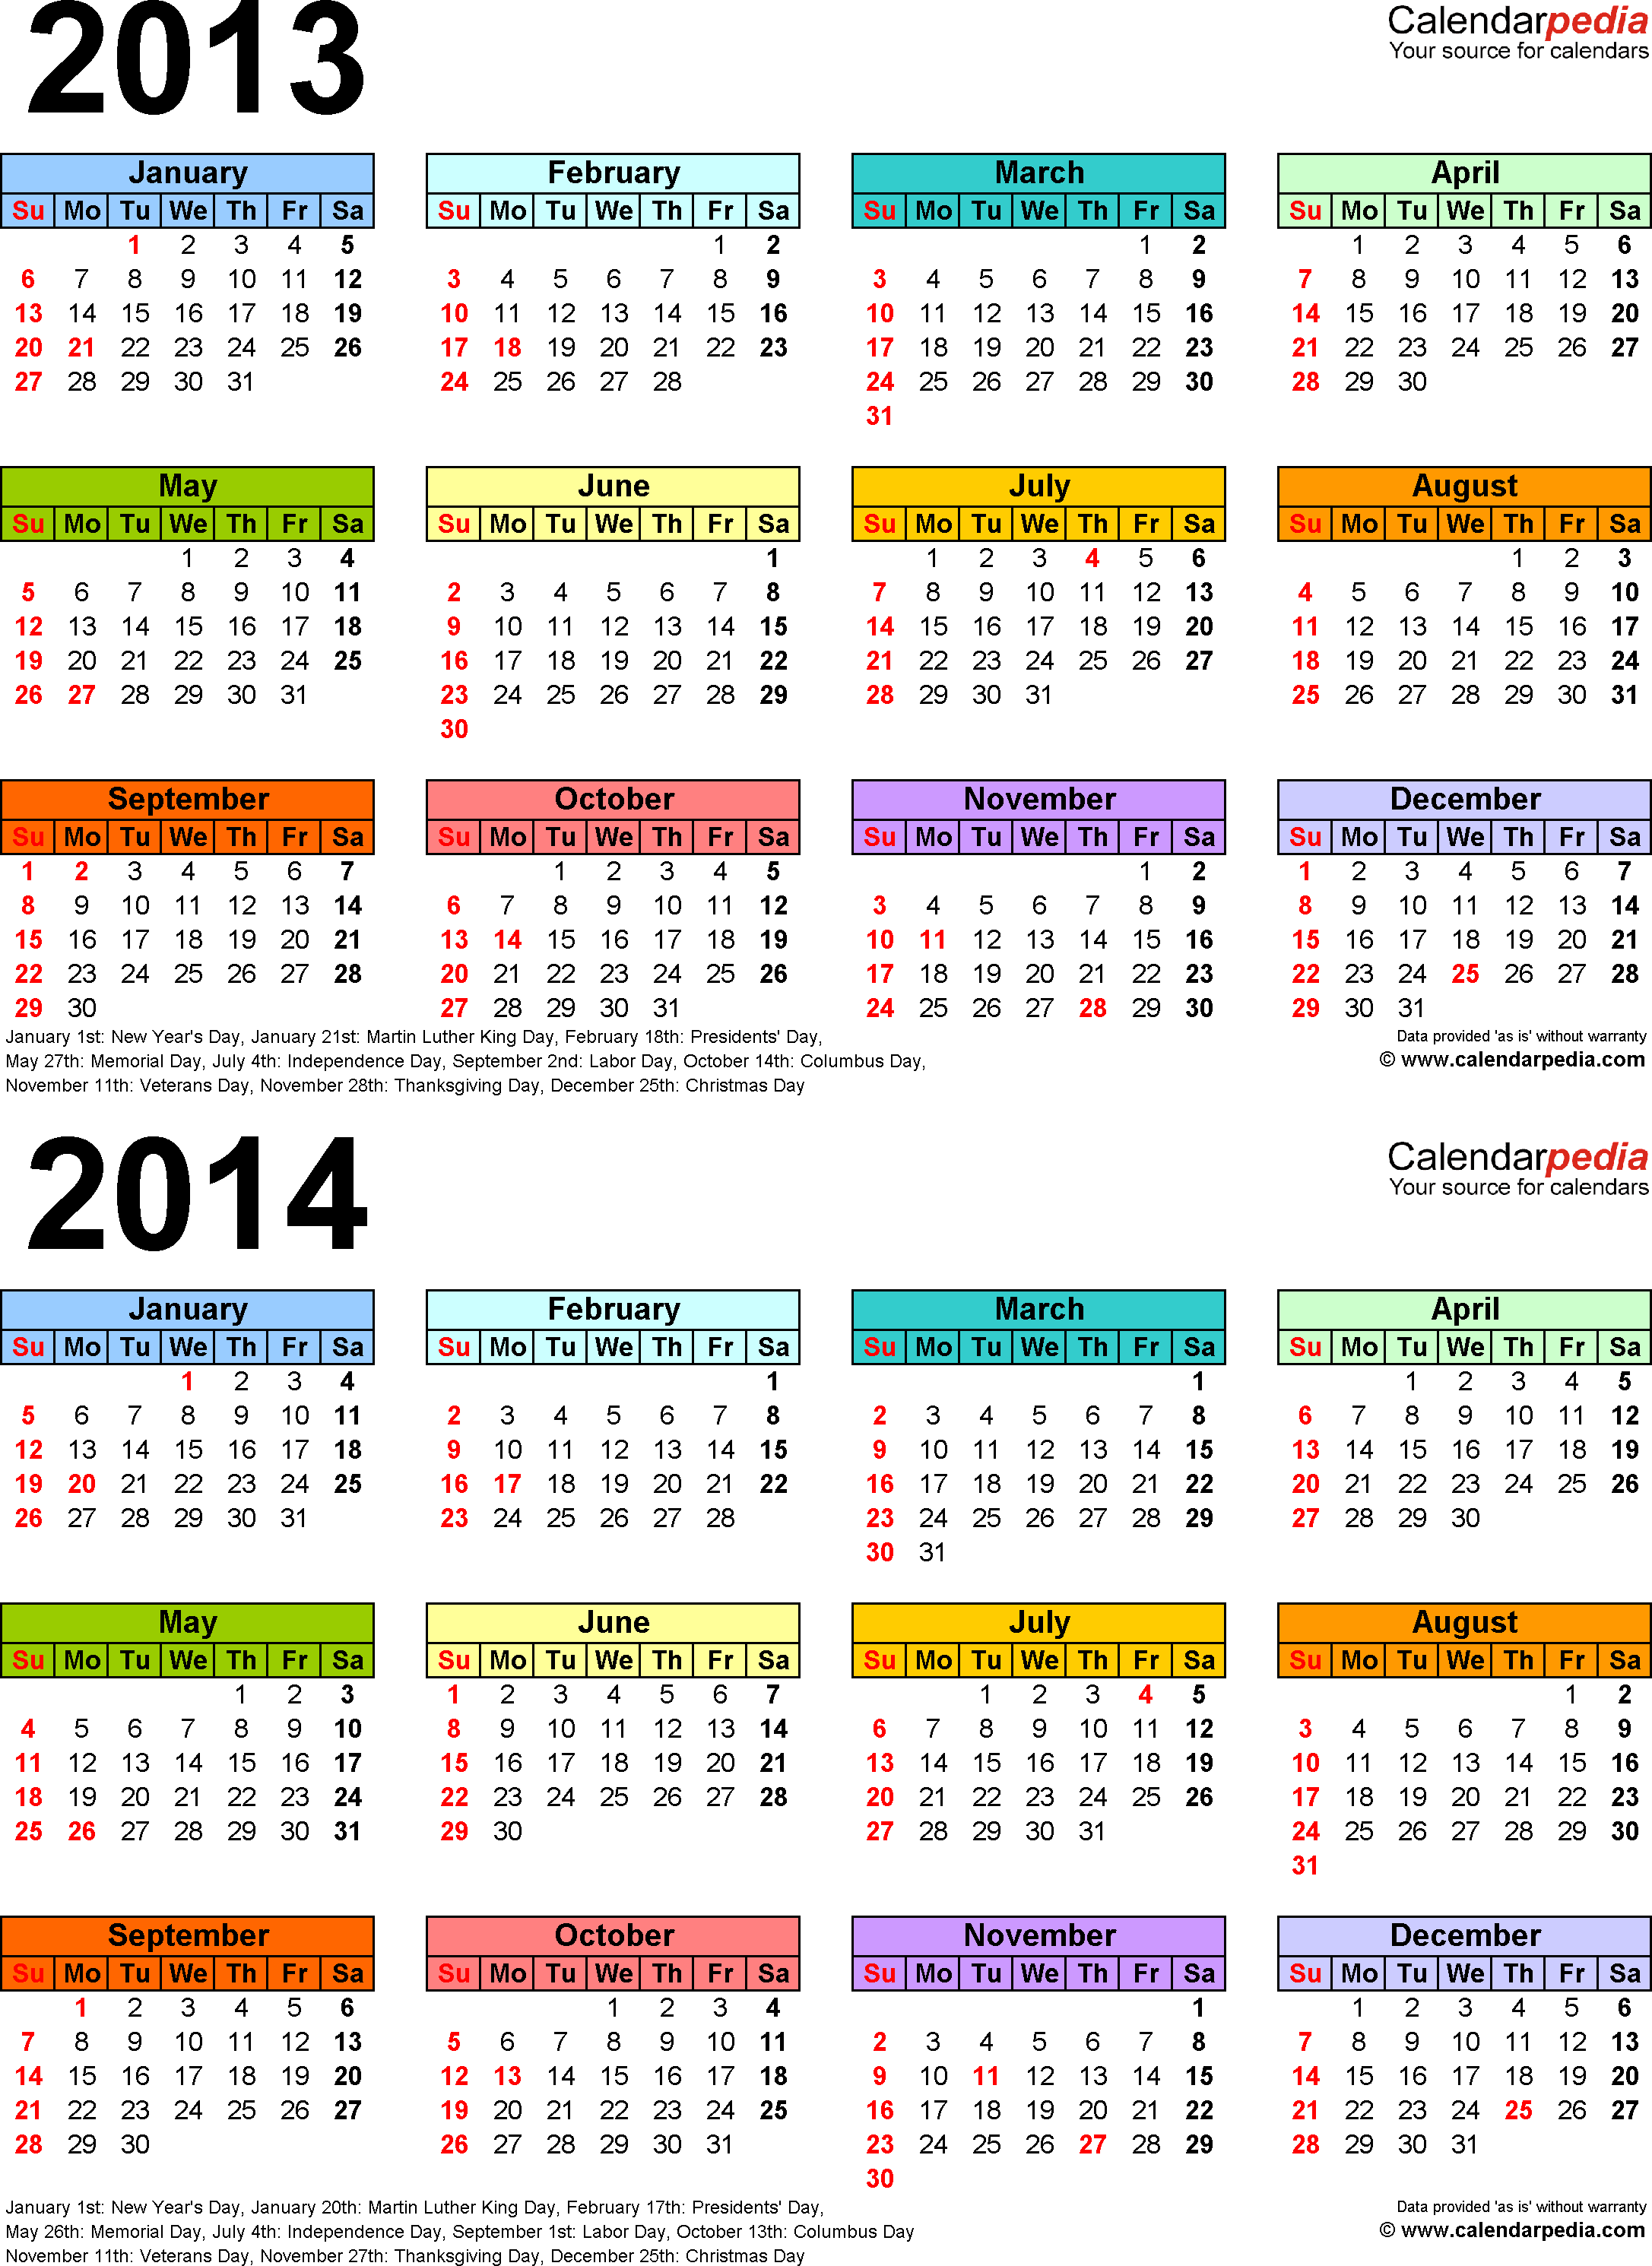 Template 3: PDF template for two year calendar 2013/2014 (portrait orientation, 1 page, in color)